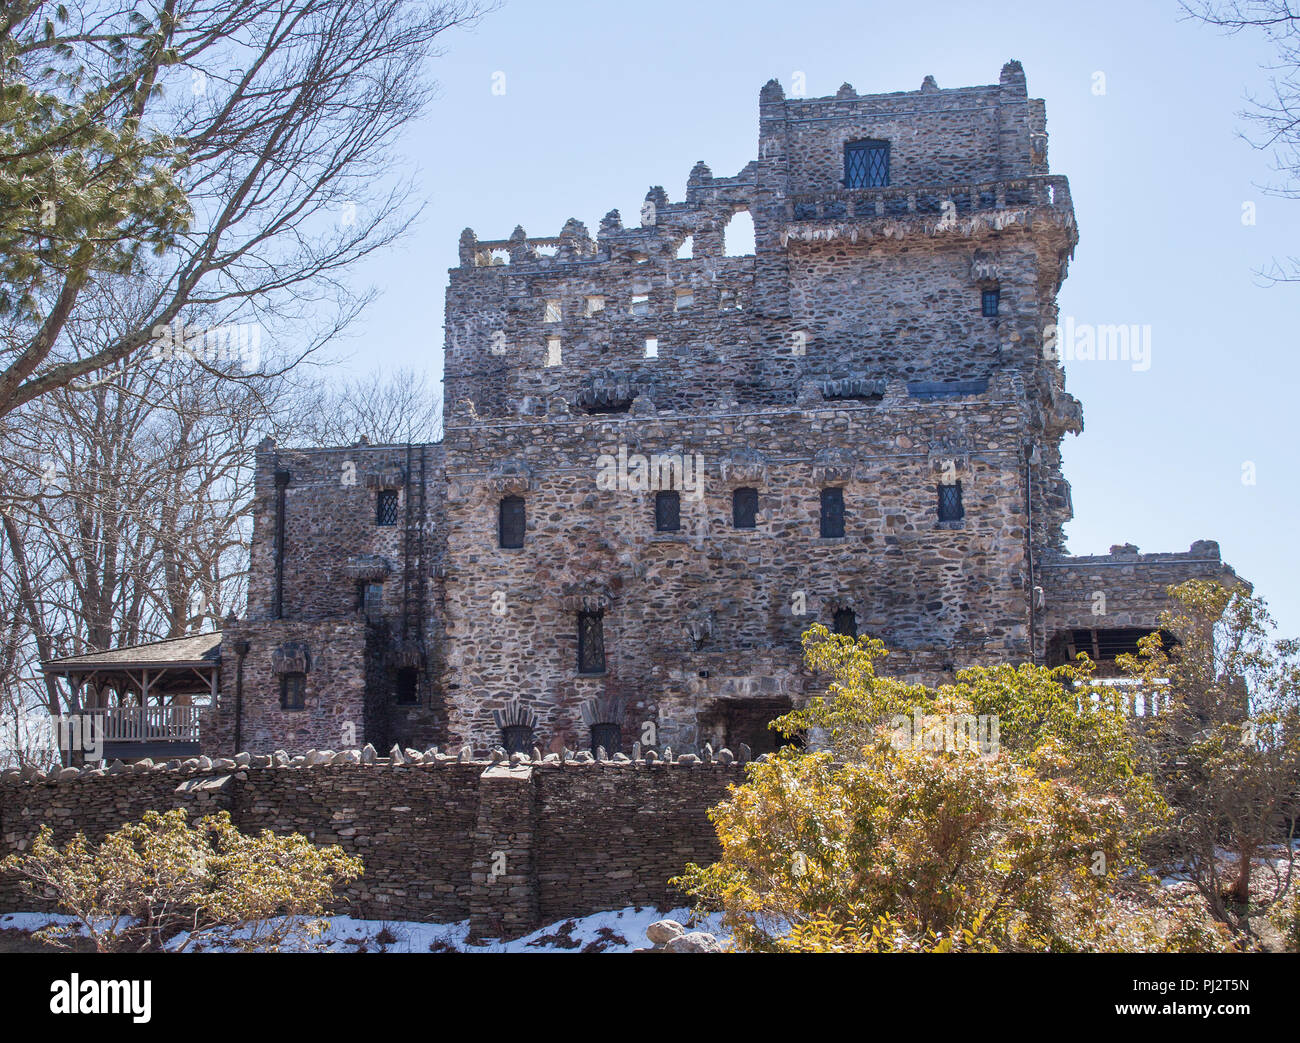 Gillette Castle in Lyme Connecticut - Stock Image